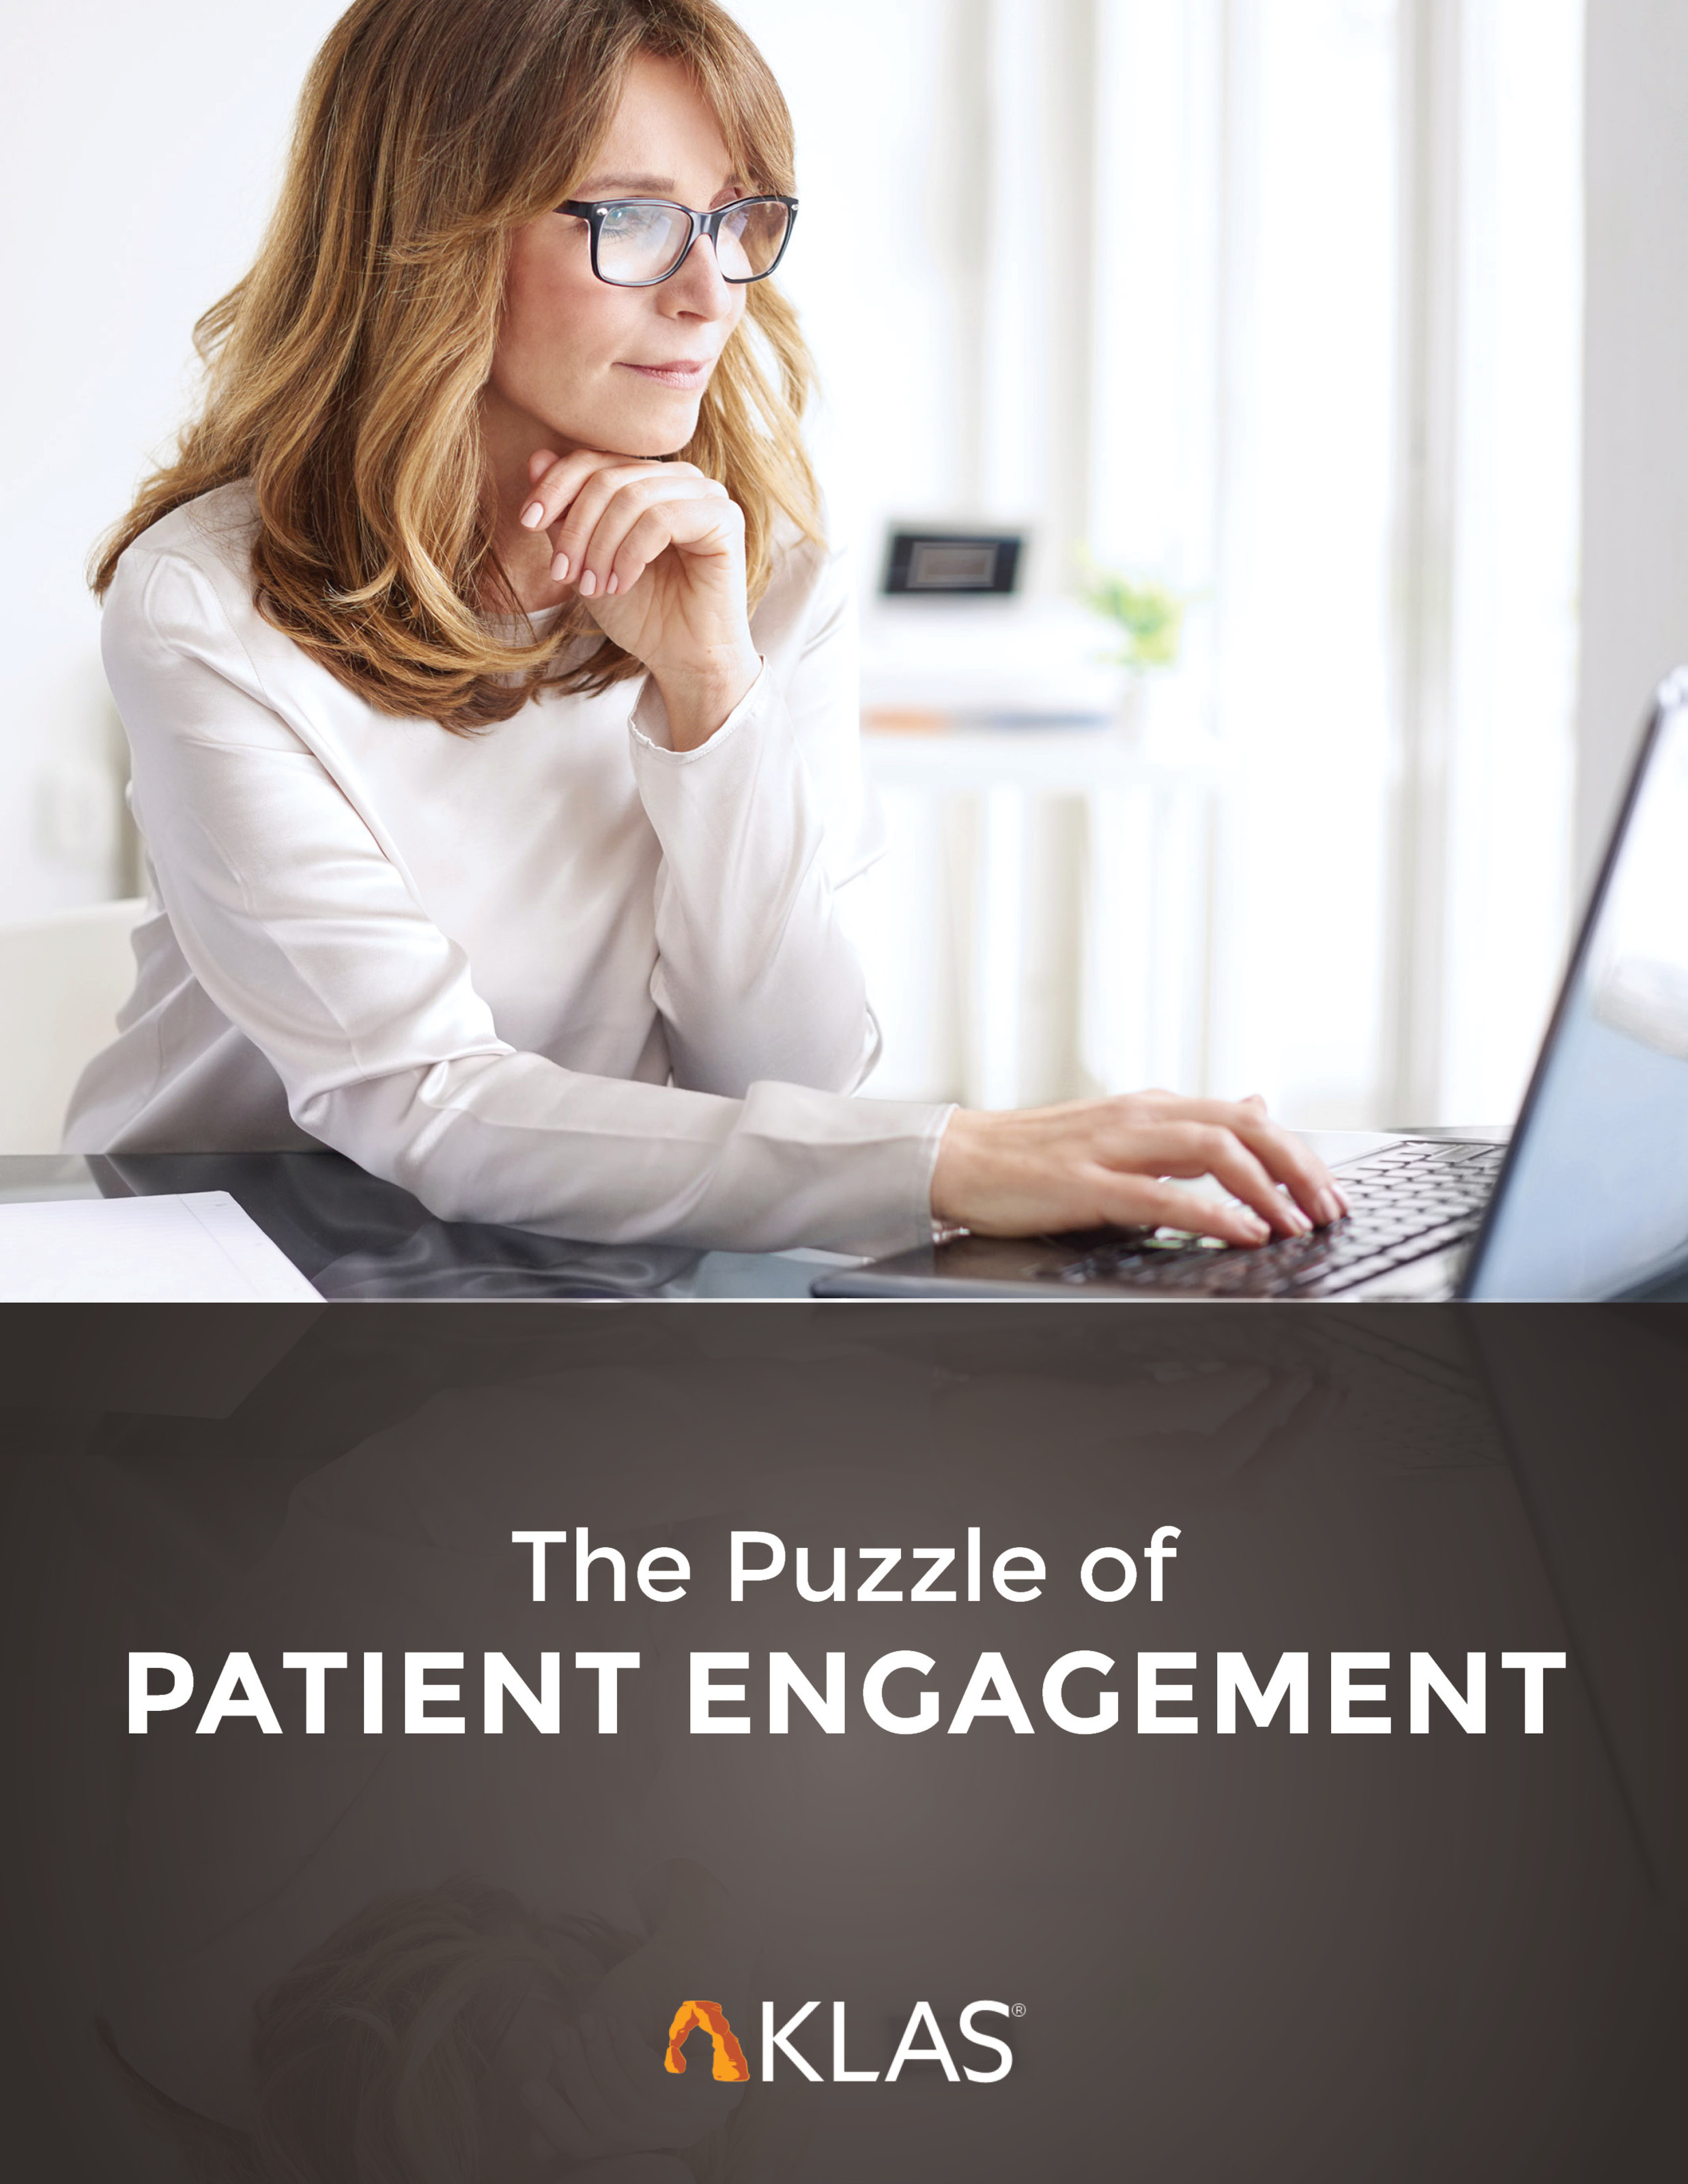 The Puzzle of Patient Engagement